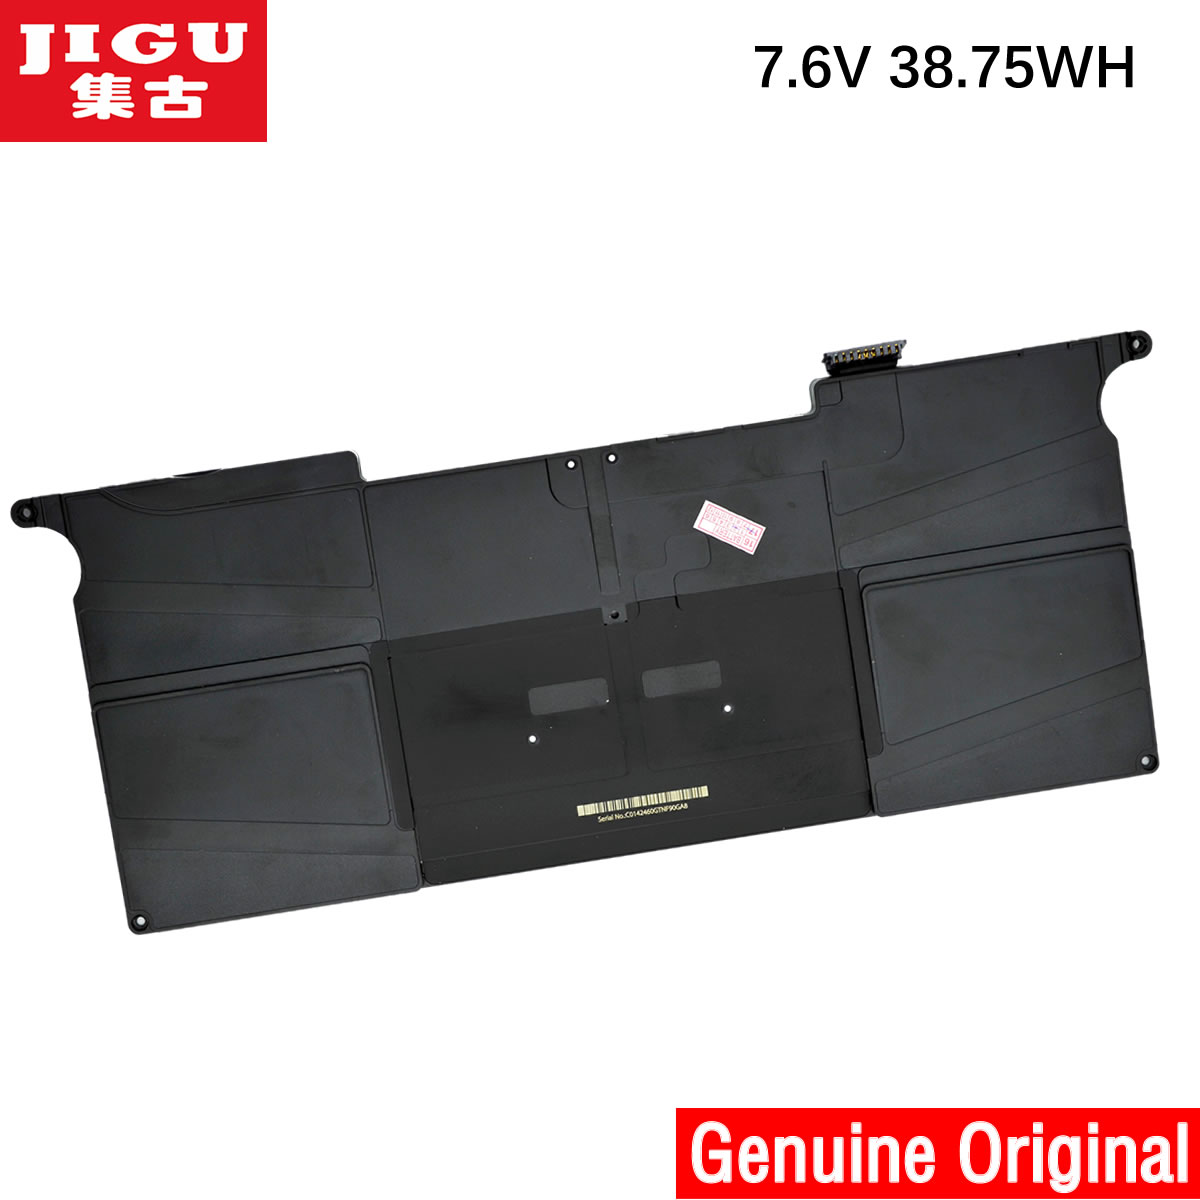 JIGU A1406 Original Laptop <font><b>Batterie</b></font> Für APPLE <font><b>MacBook</b></font> <font><b>Air</b></font> <font><b>11</b></font>